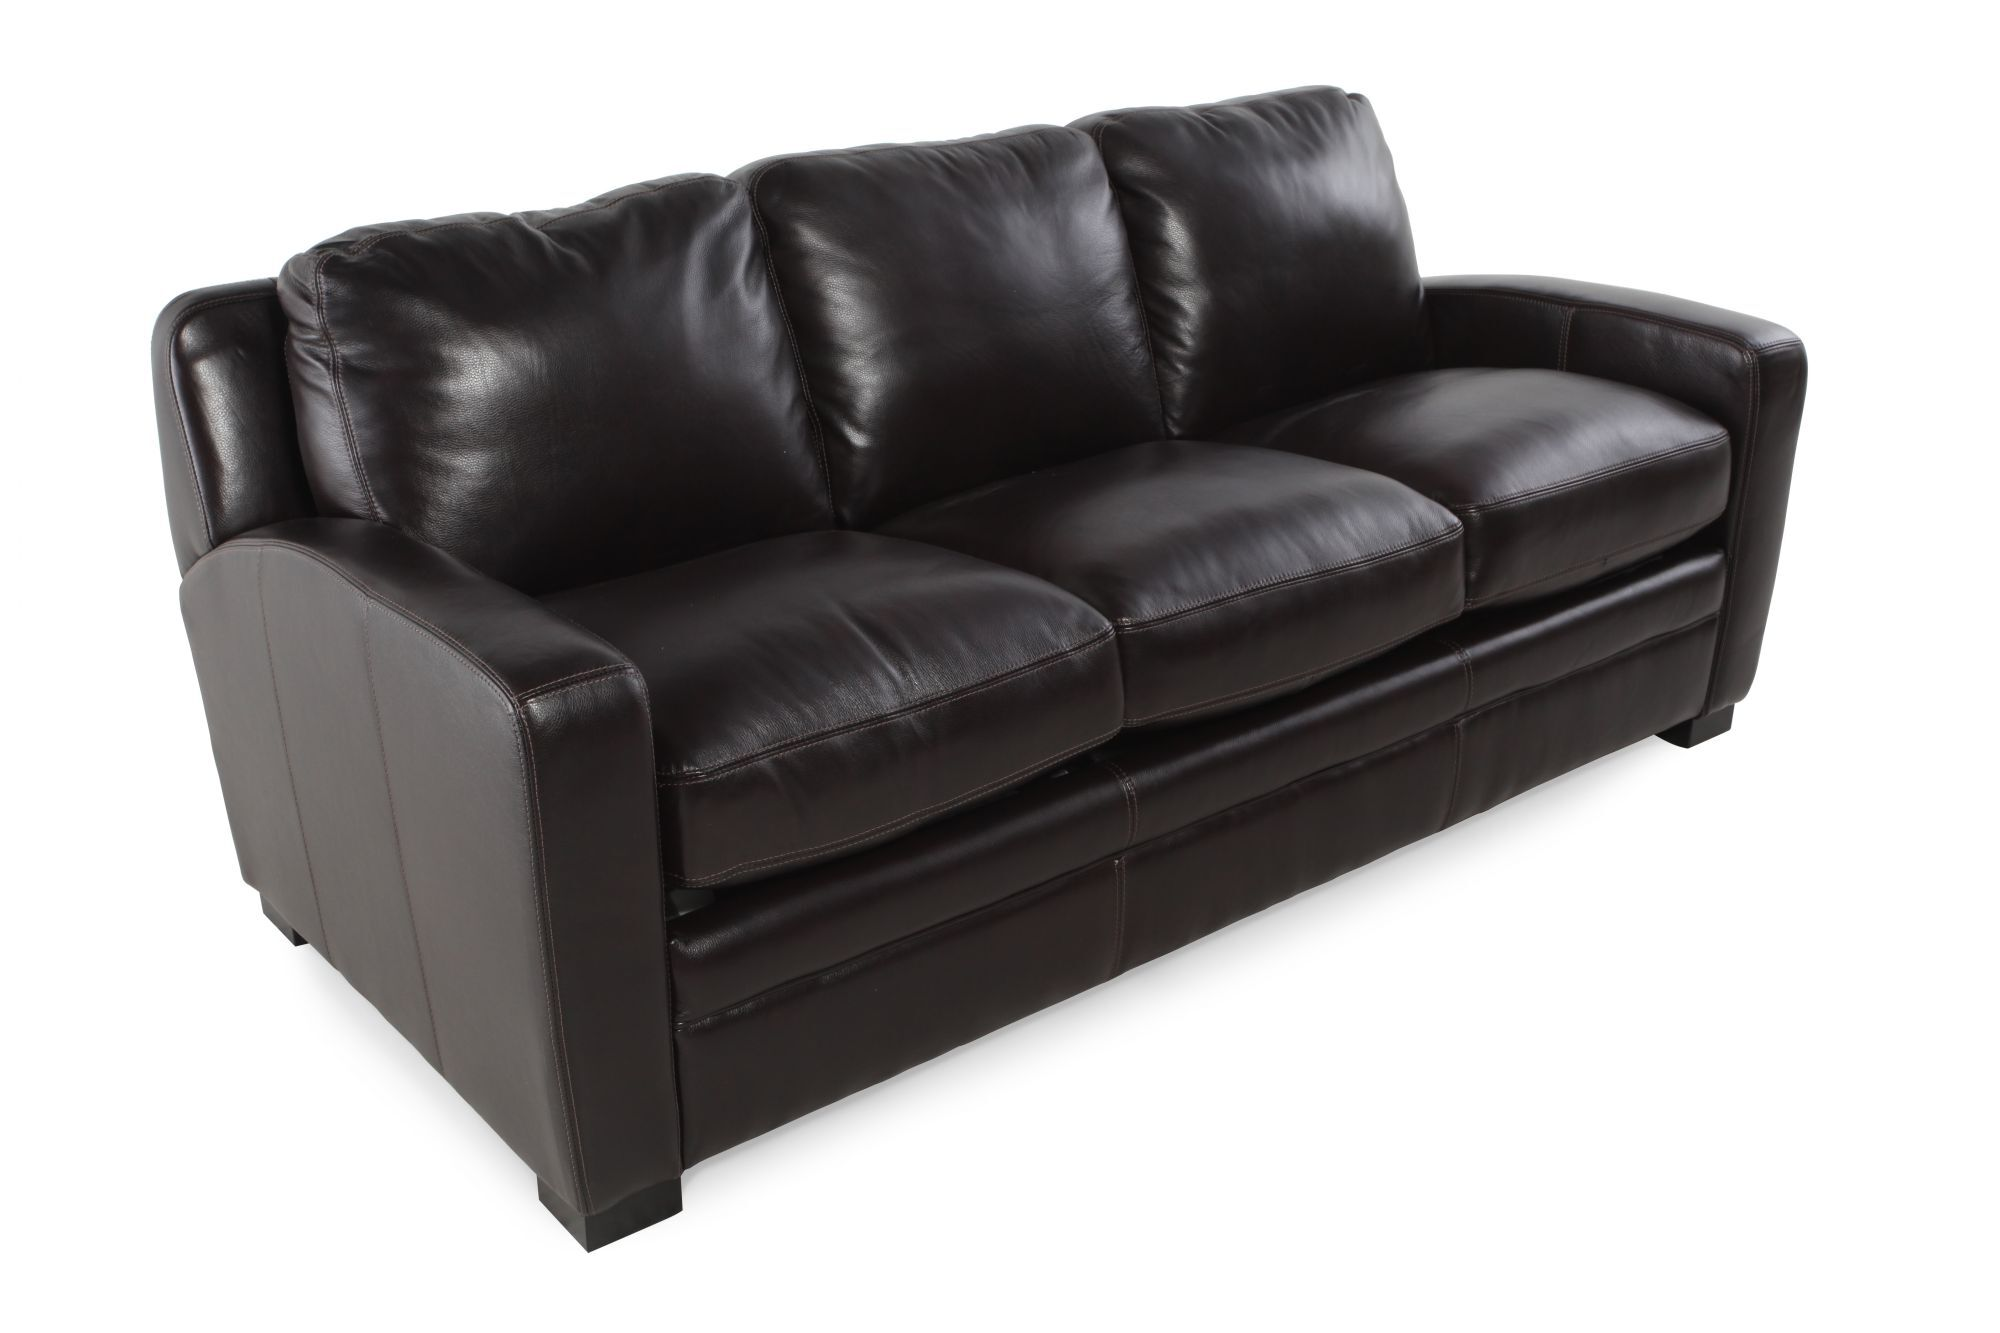 Traditional Leather Queen Sleeper Sofa In Black